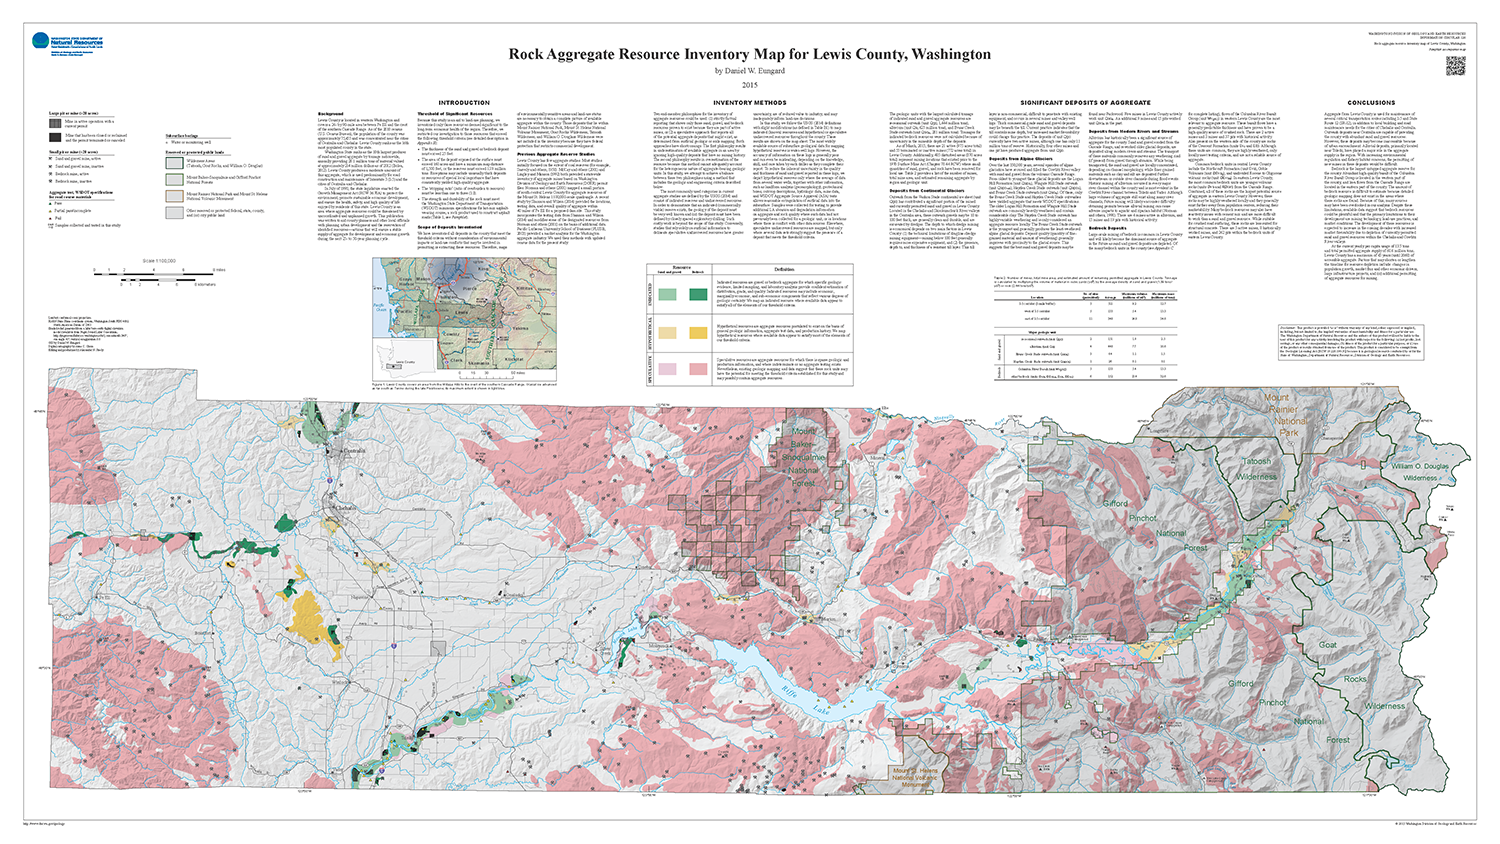 Lewis County Washington Map.Newly Published Rock Aggregate Resource Inventory Map Of Lewis